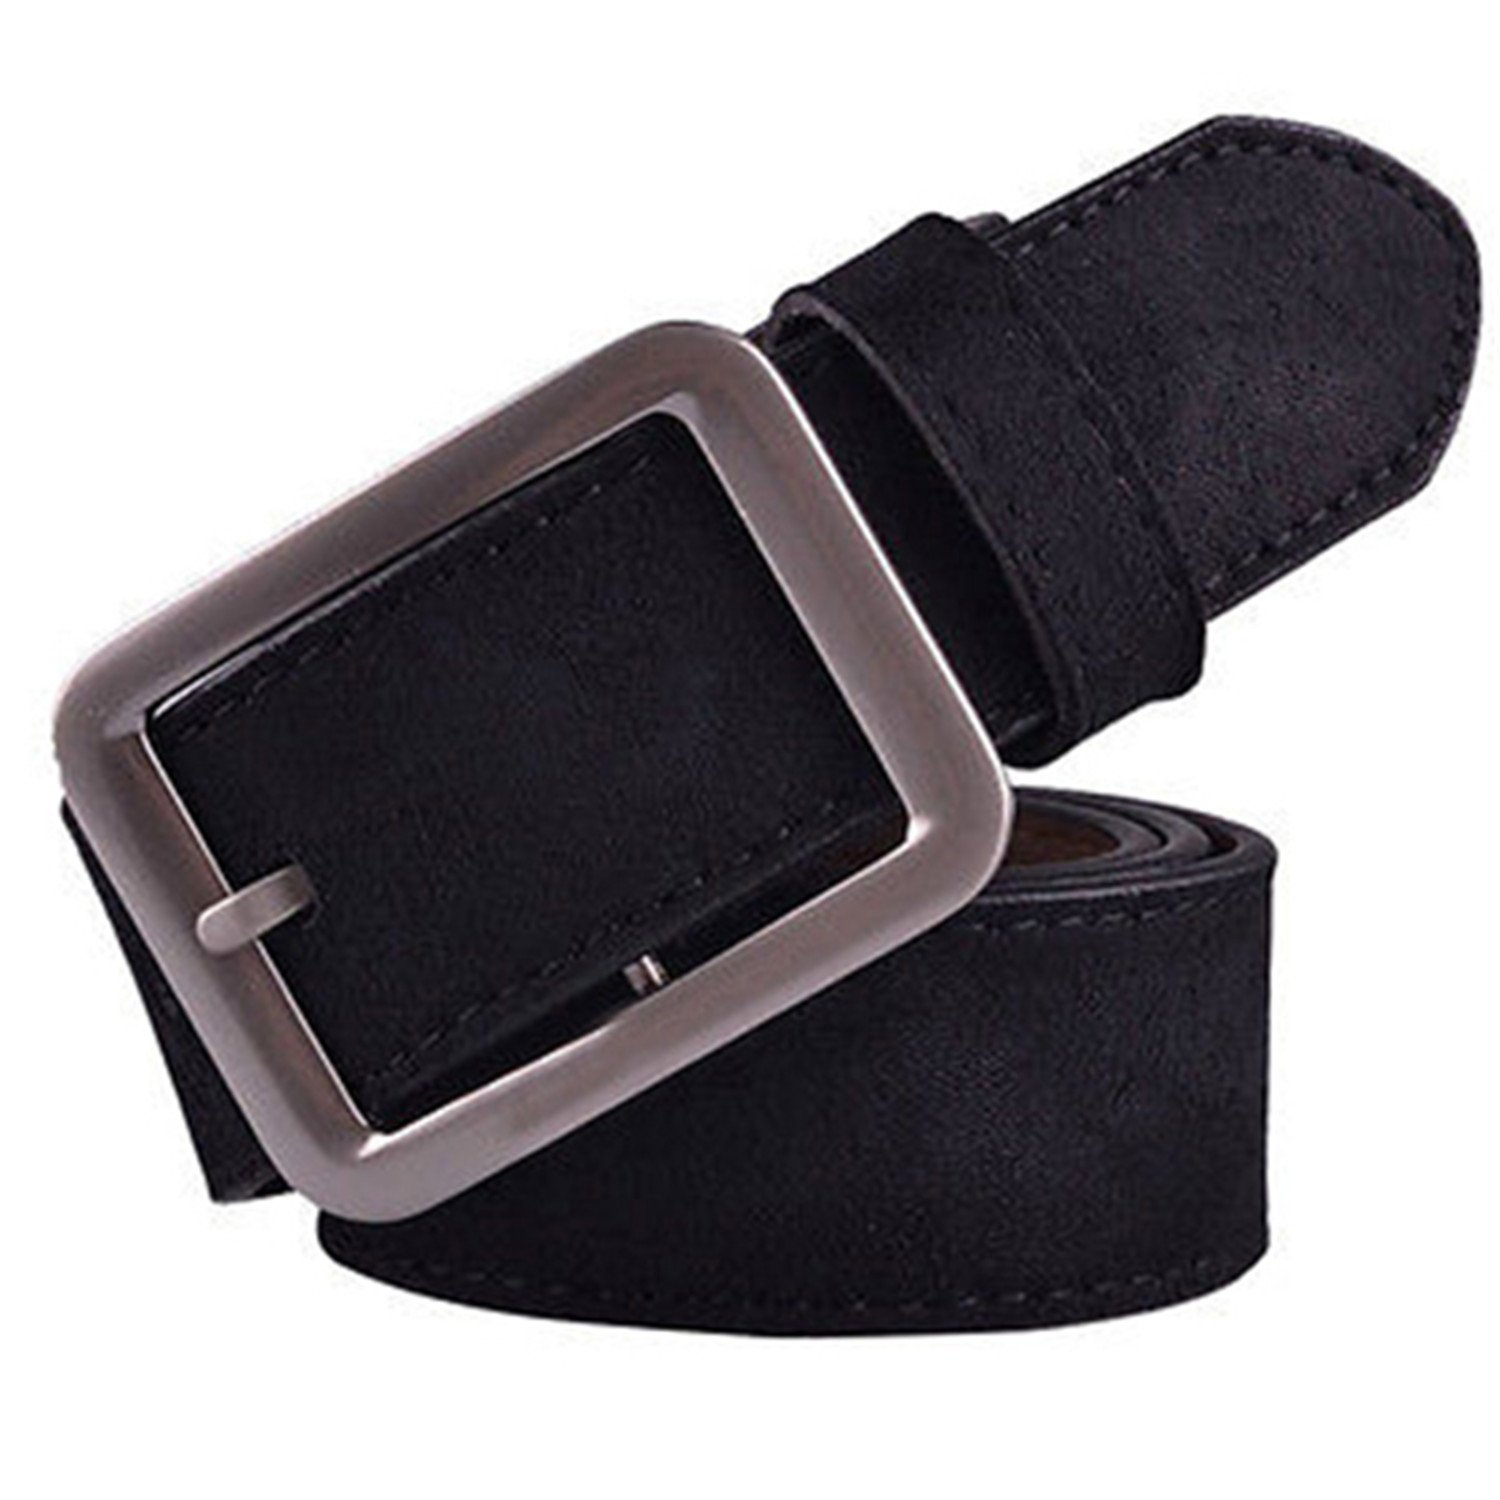 Thadensama Men Fashion Casual Faux Leather Waistband Pin Buckle Waist Strap Belts Gift